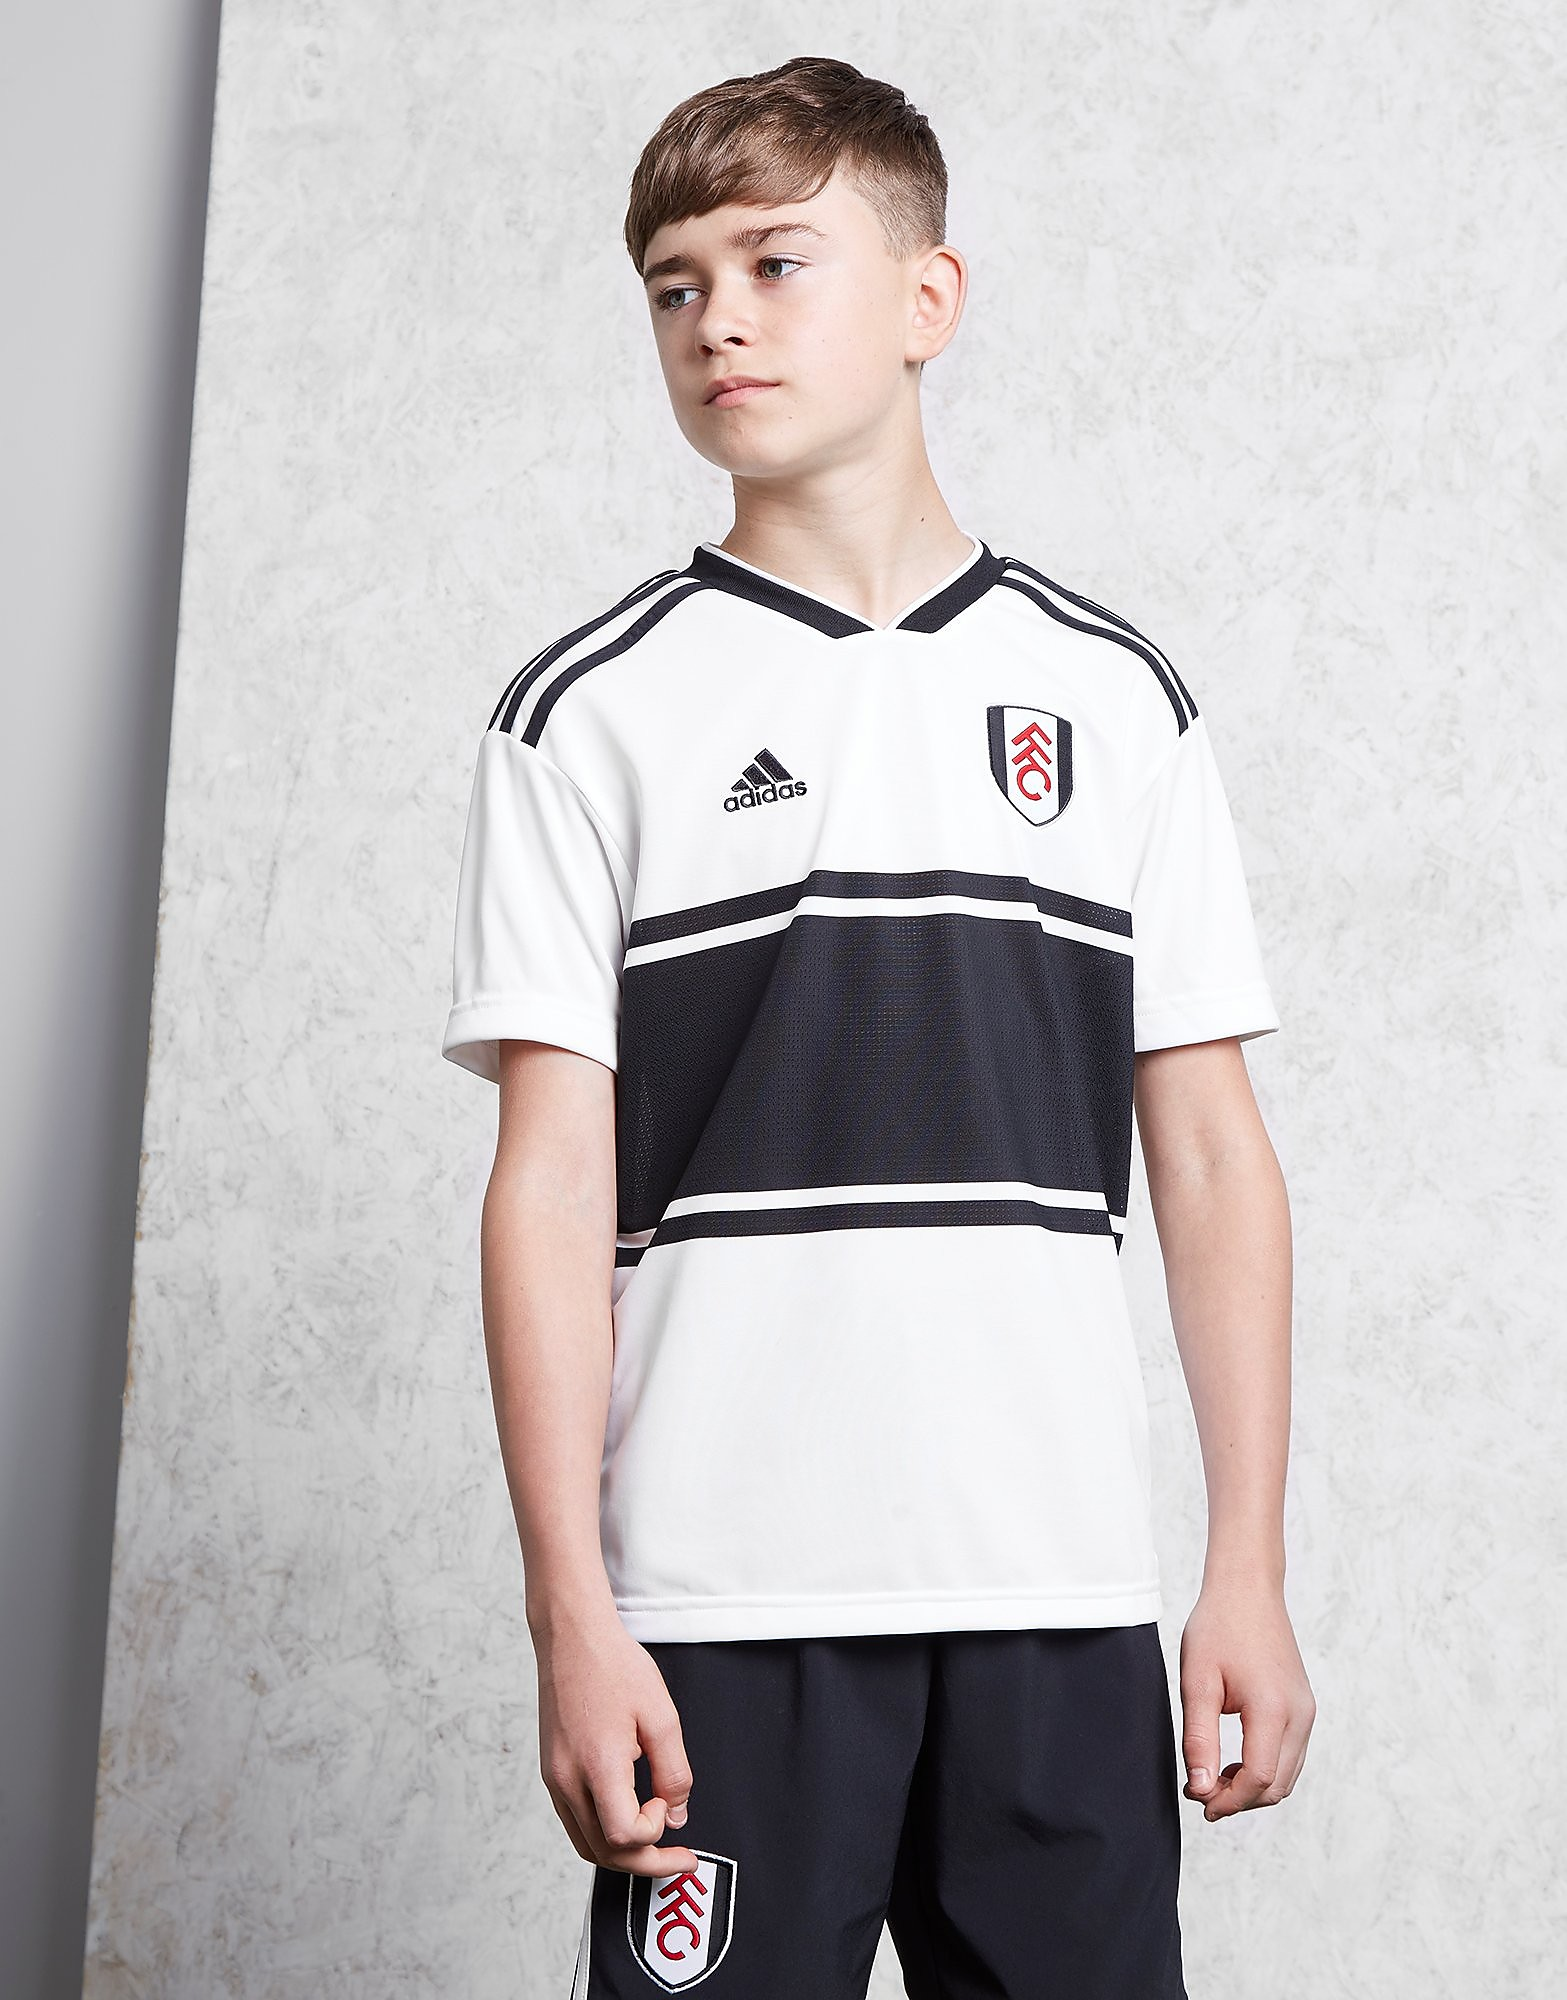 adidas Fulham FC 2018/19 Home Shirt Junior - Wit - Kind